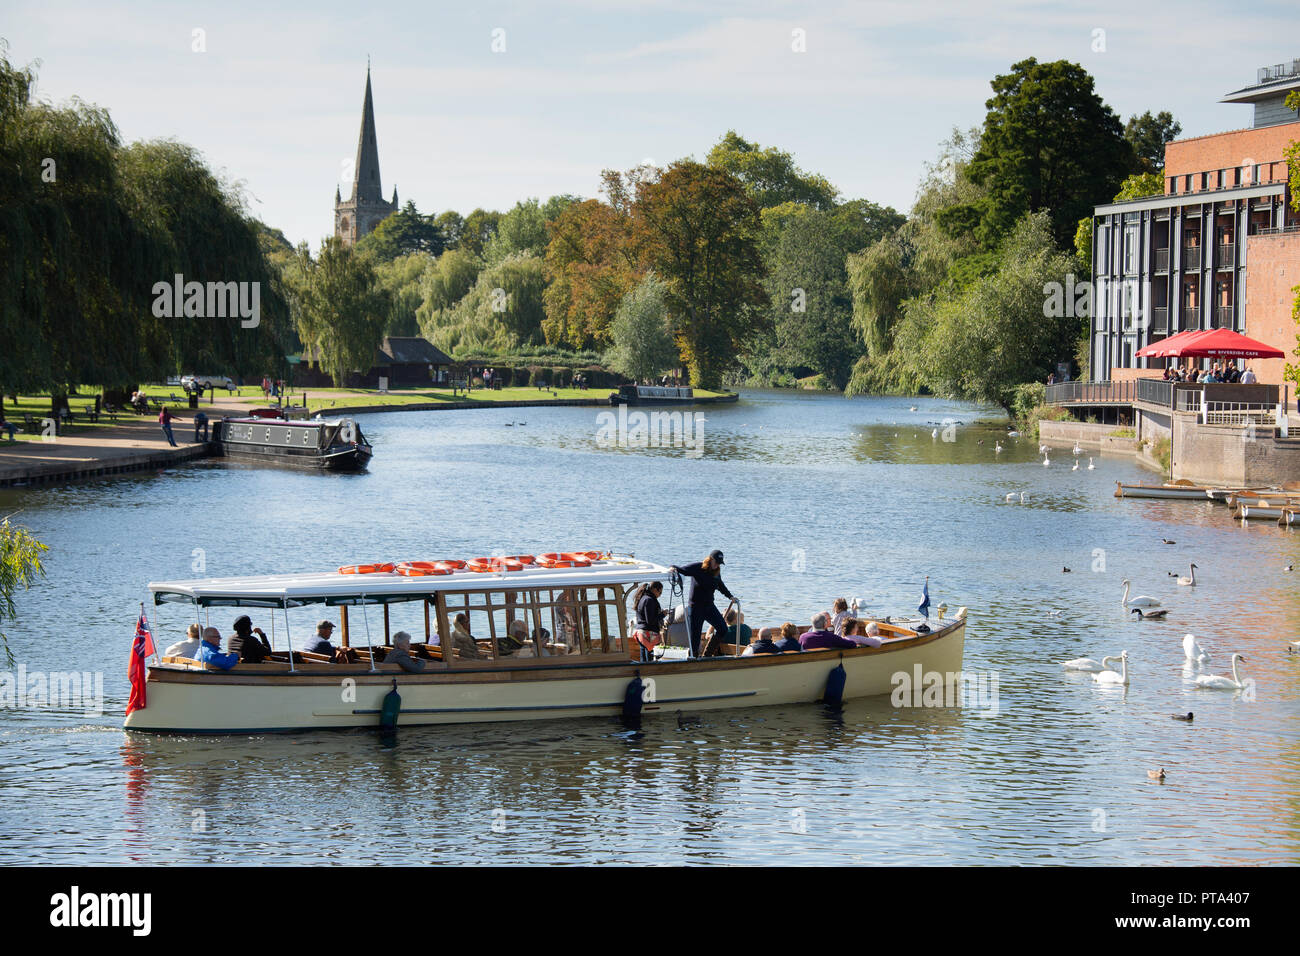 A river cruise ship taking tourists and visitors along the River Avon in Stratford upon Avon on a bright Autumnal day. - Stock Image